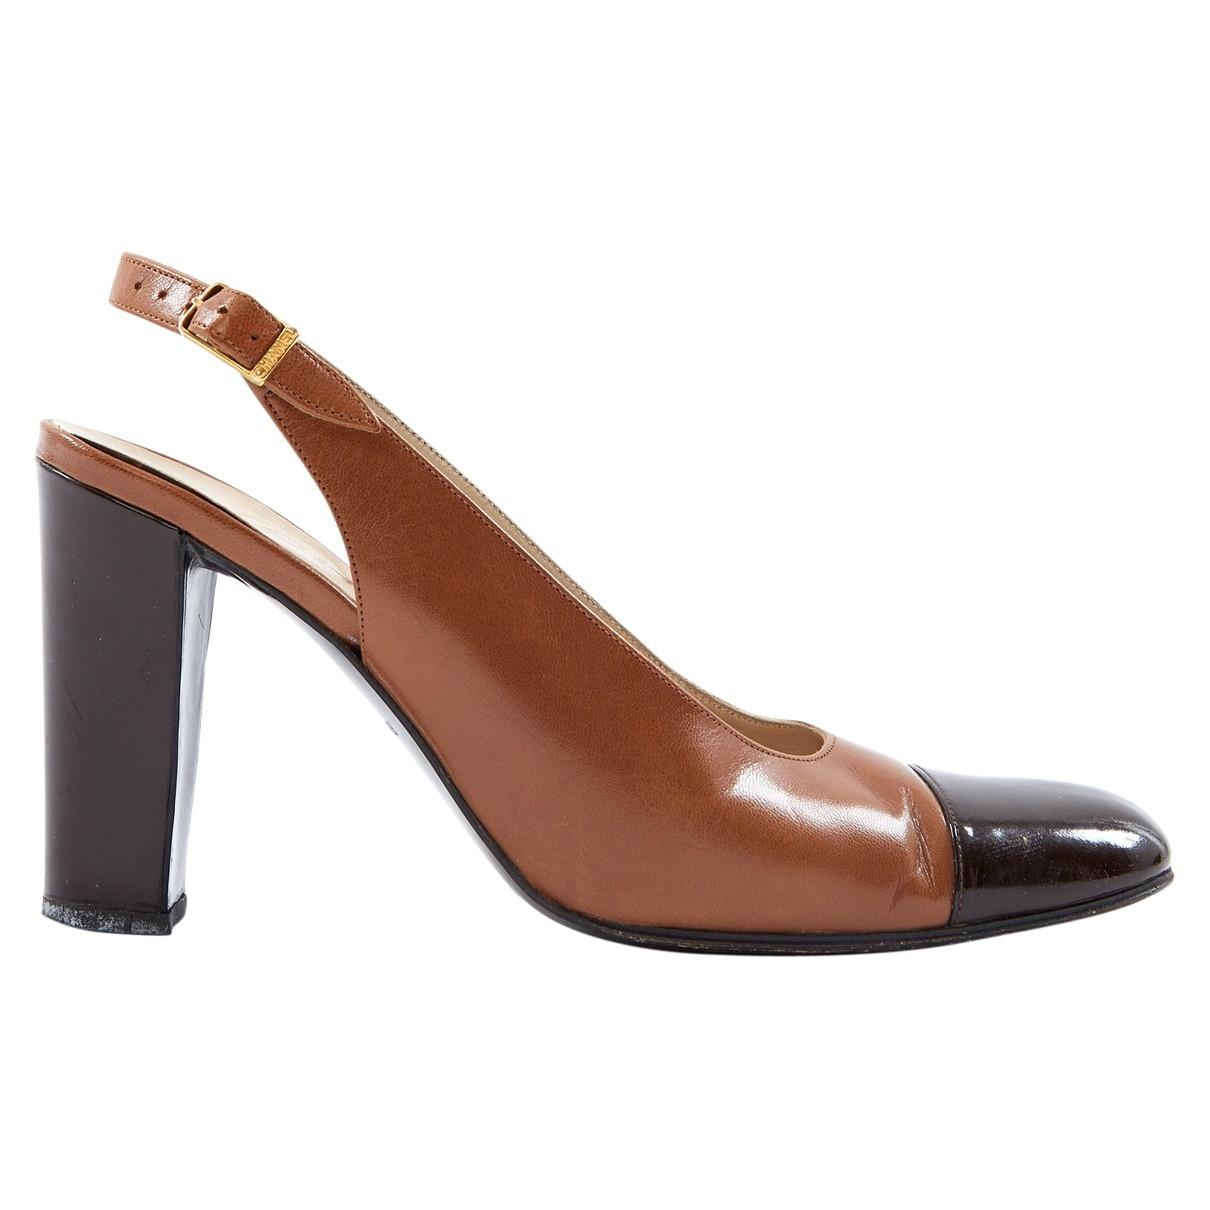 9c86ee9afc8 Chanel. Women s Vintage Slingback Brown Leather Heels. £225 £182 From Vestiaire  Collective